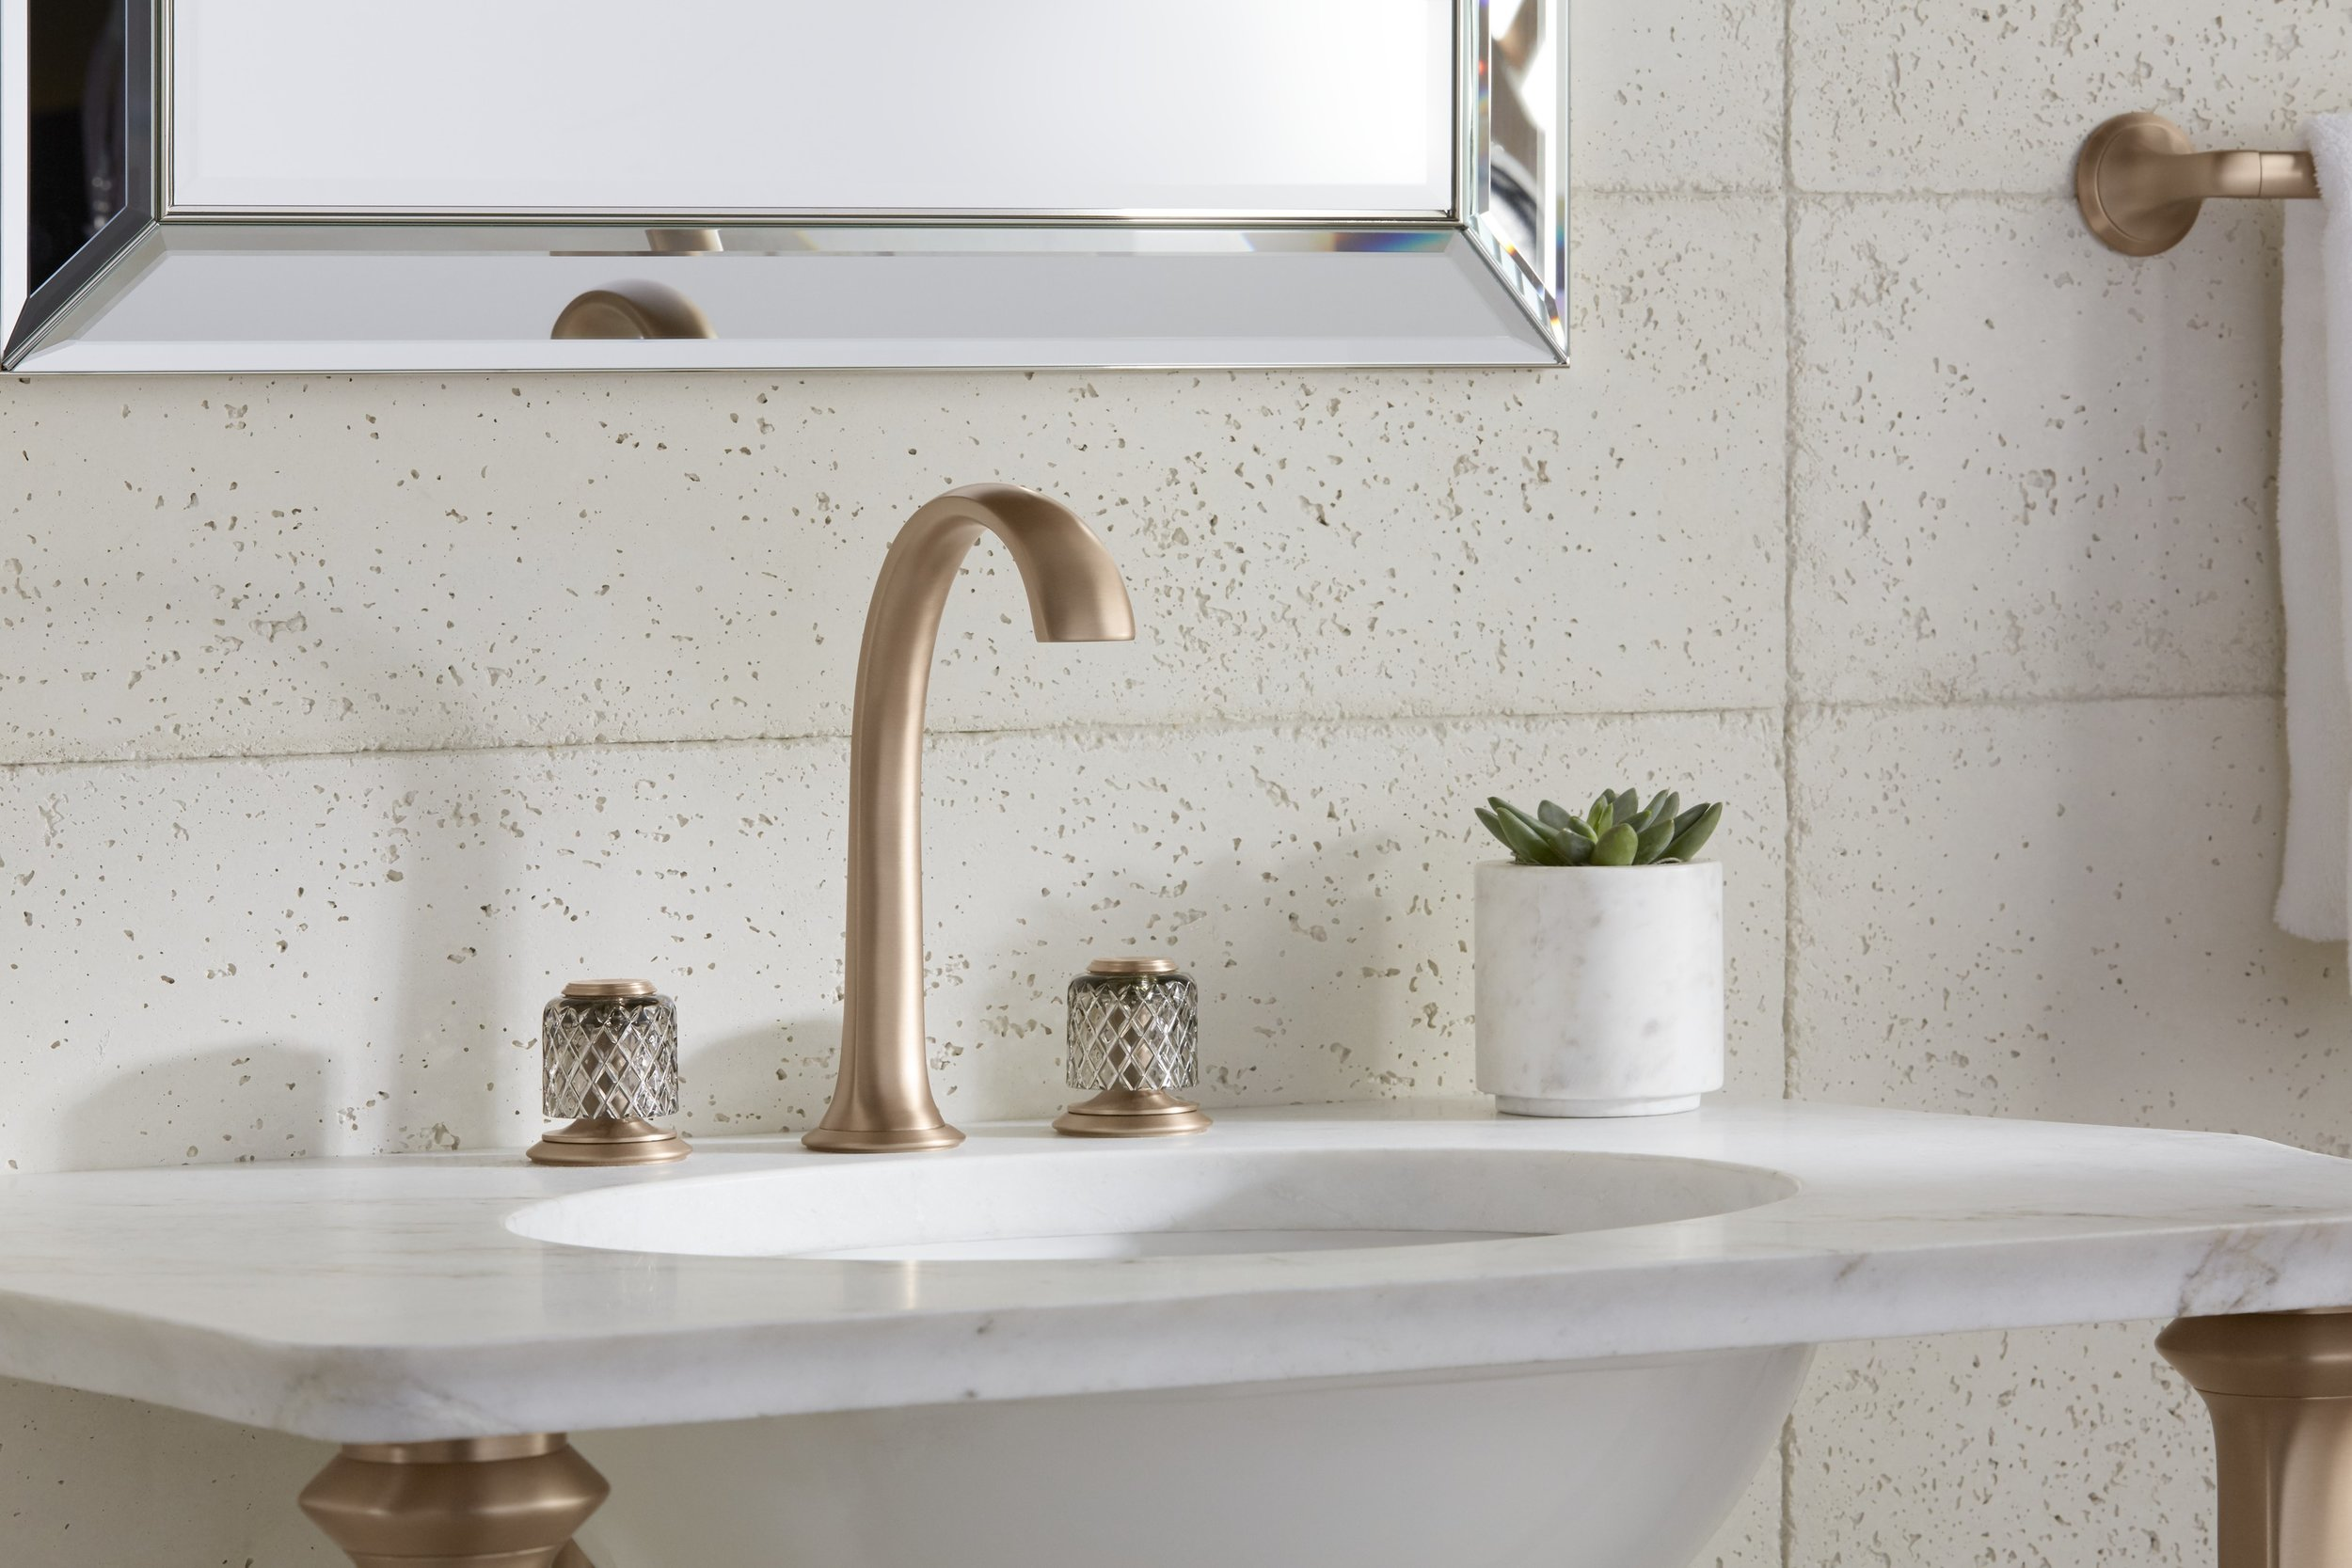 Script arch spout faucet in blush bronze (new finish) with St. Louis crystal knobs.jpg